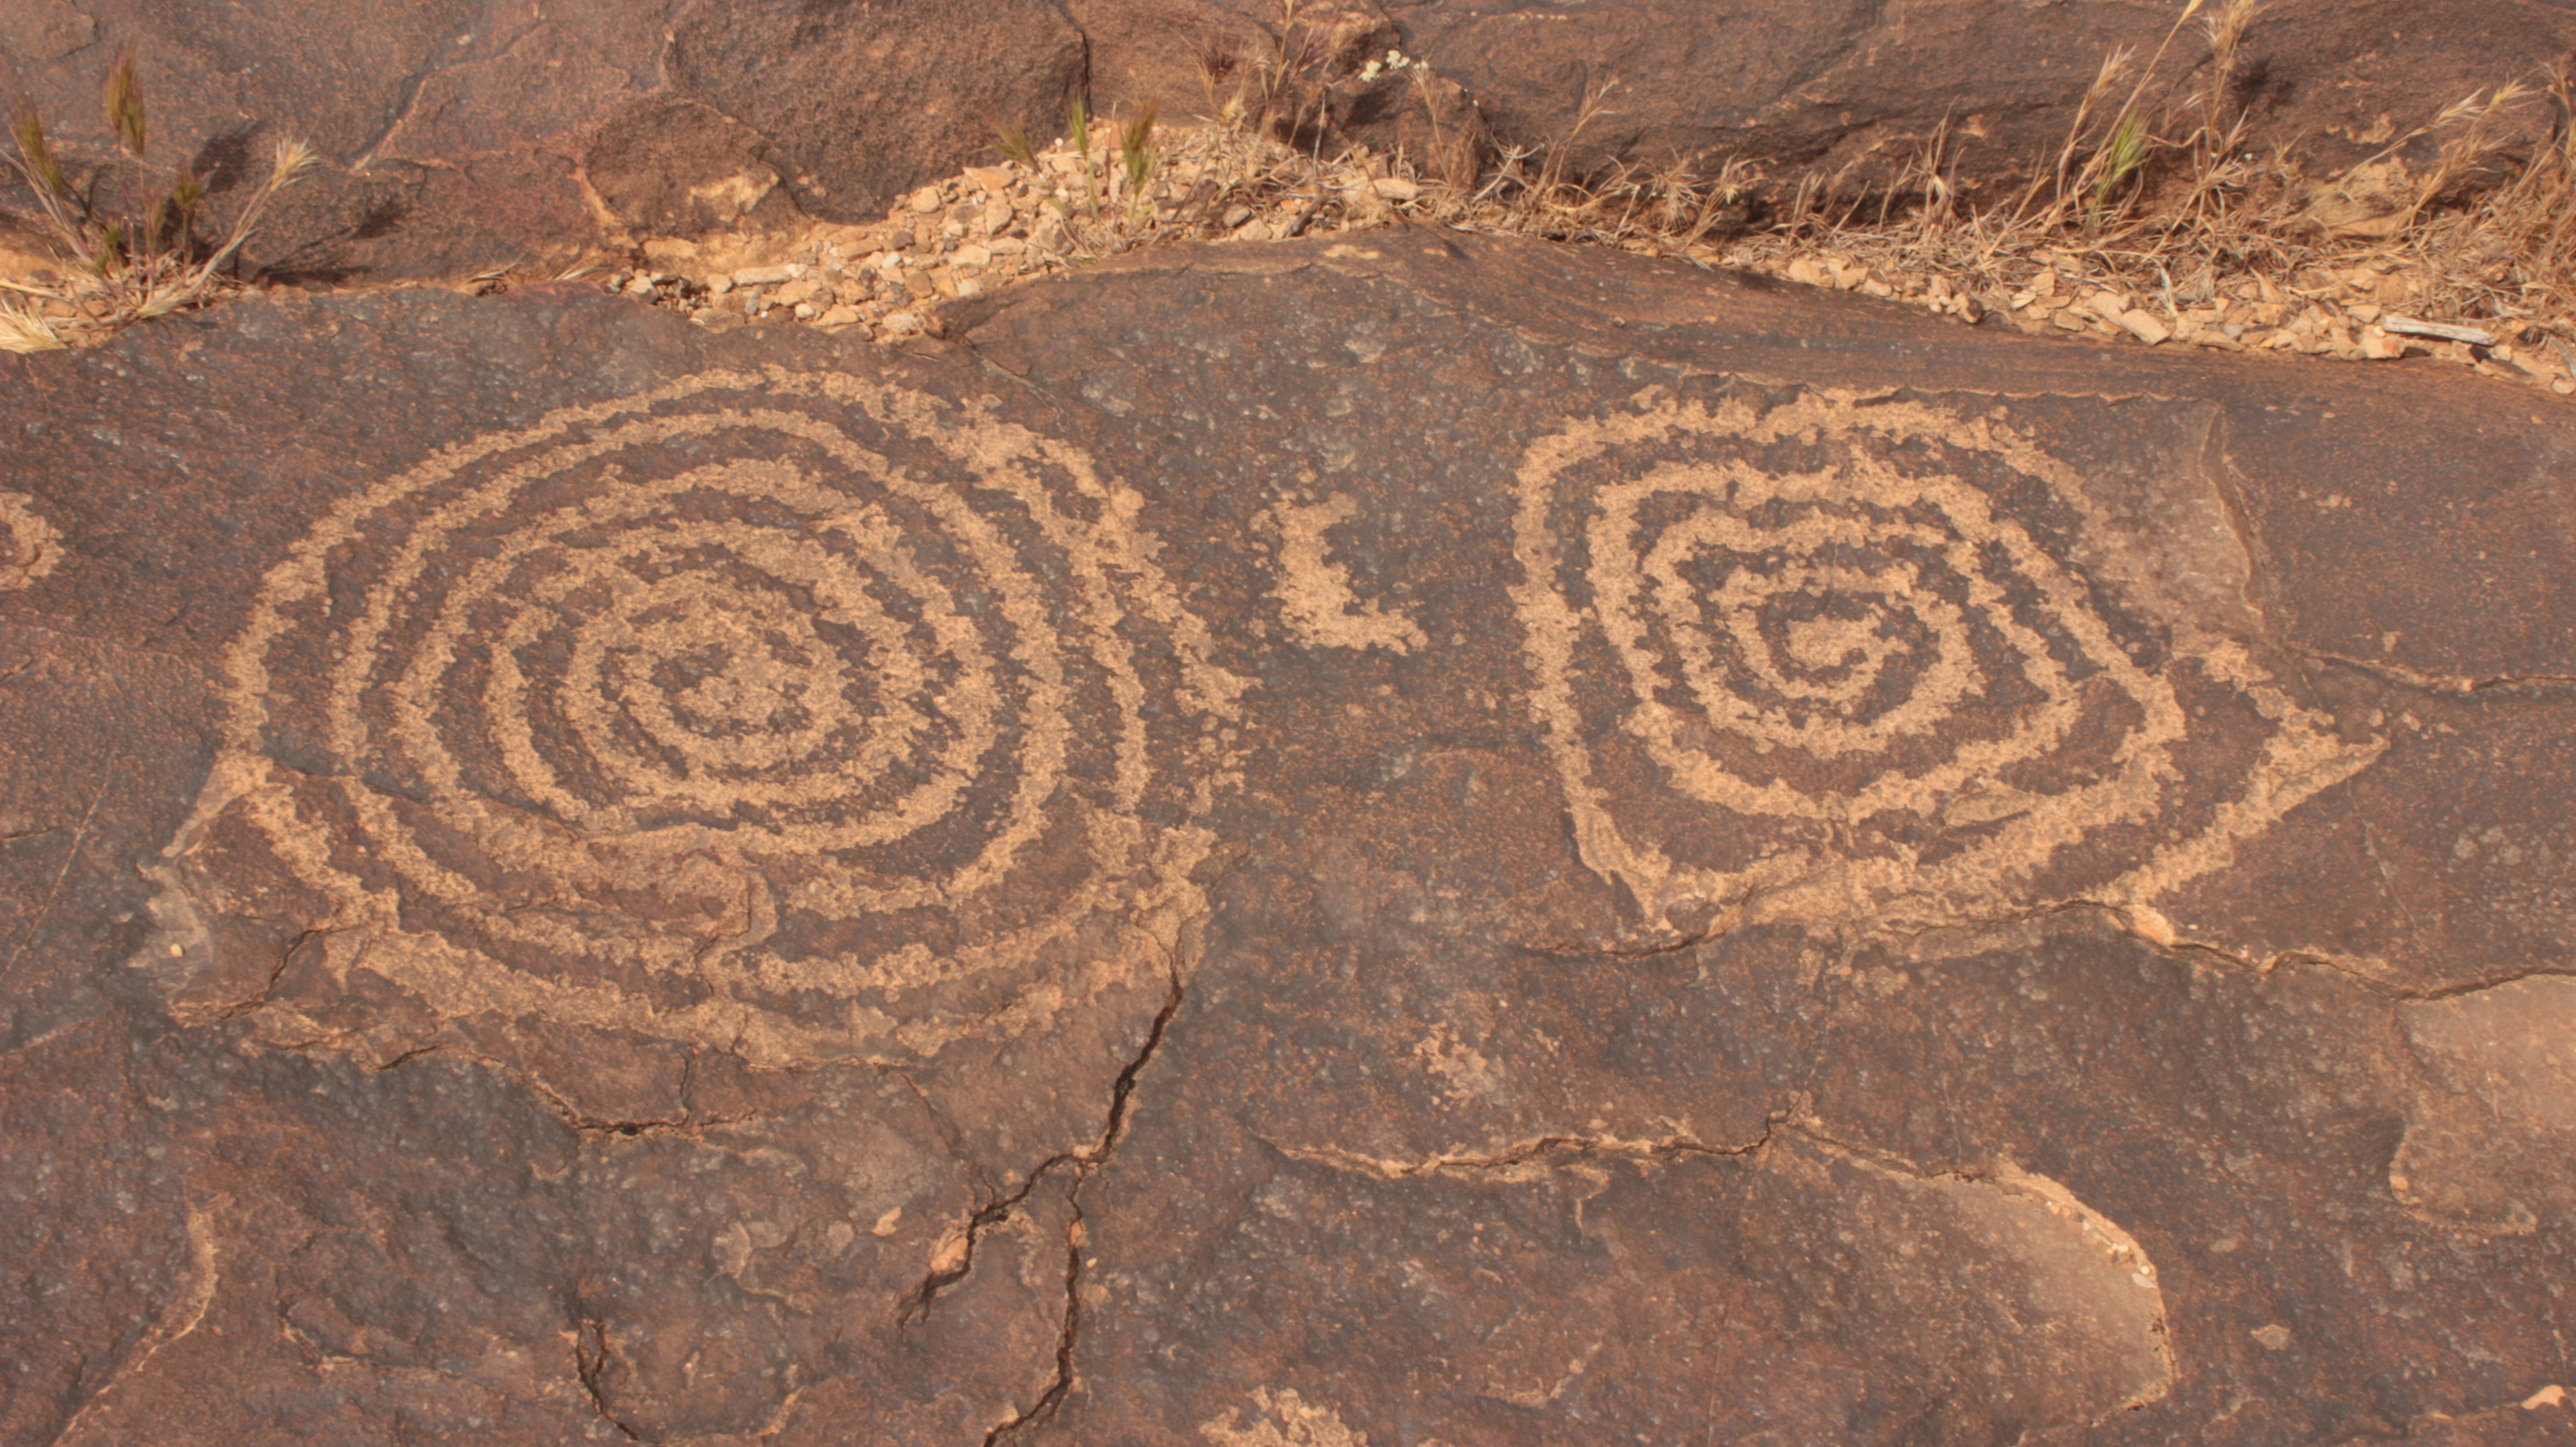 Petroglyphs at the Land Hill site in Santa Clara are some of the cultural resources the BLM is tasked with protecting, St. George, Utah, May 5, 2016 | Photo by Don Gilman, St. George News